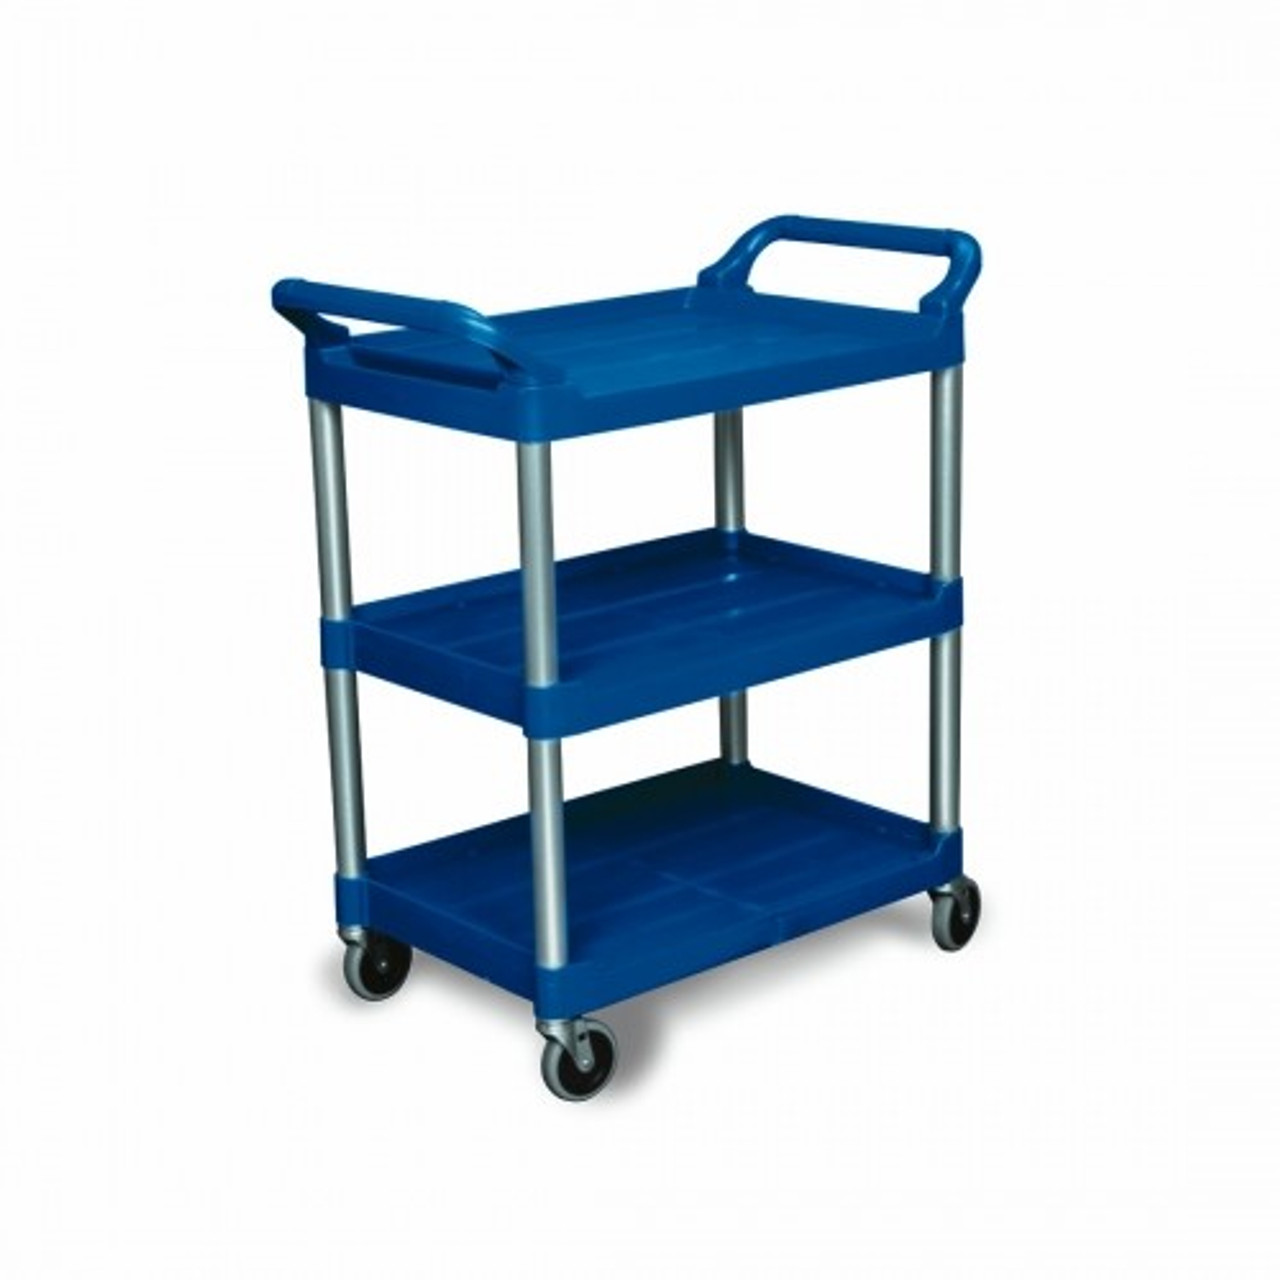 Rubbermaid Utility Cart - Blue